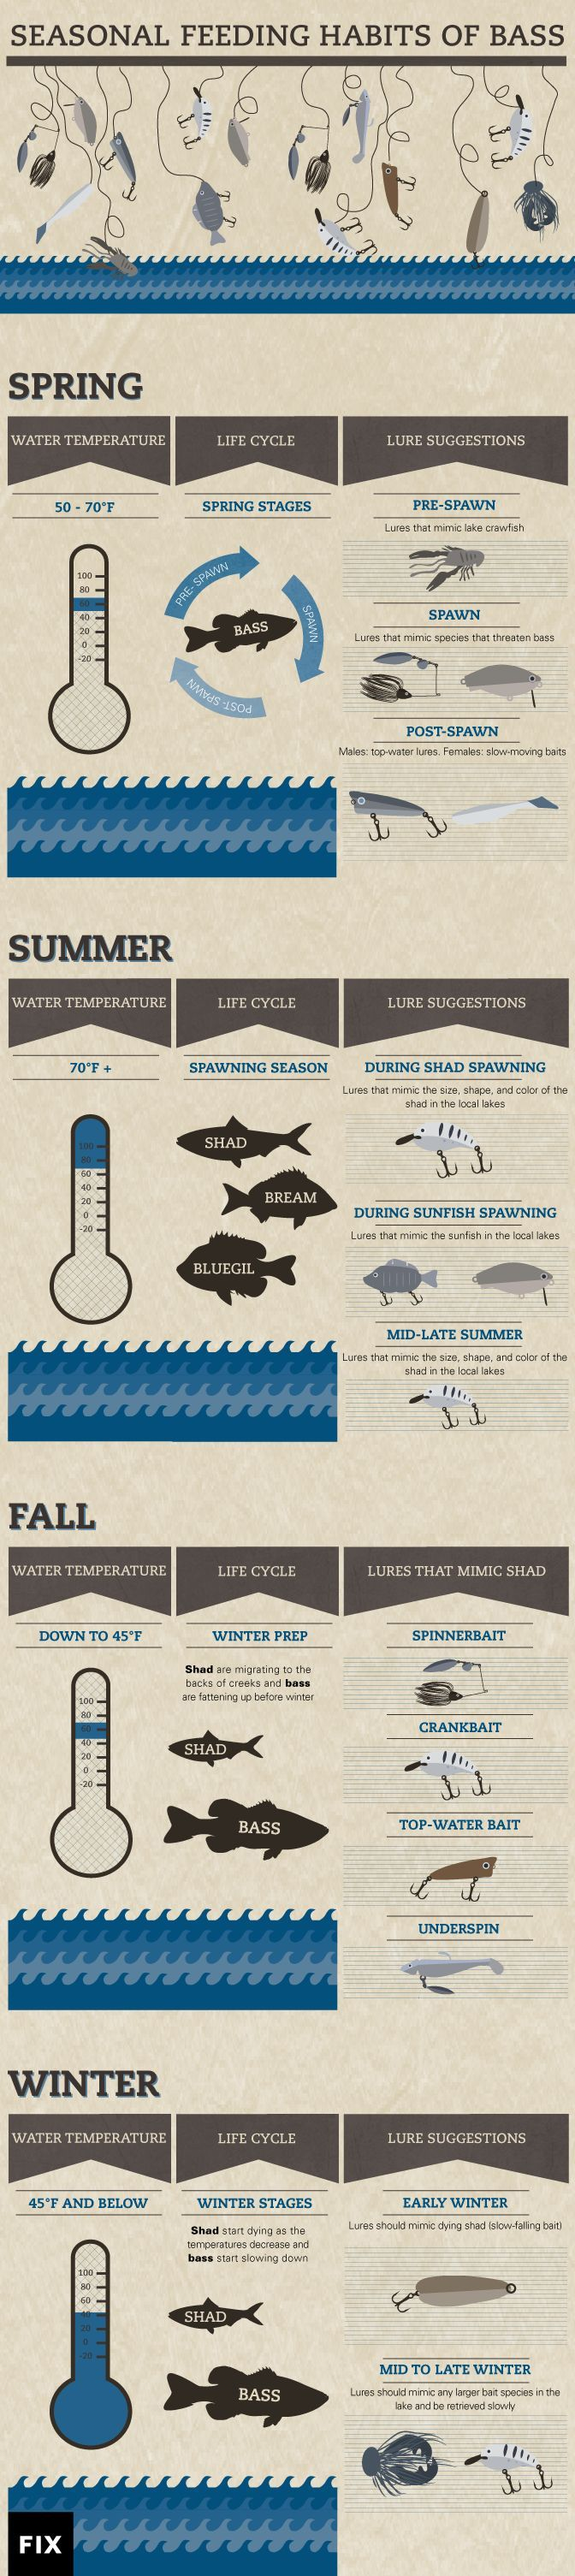 Take advantage of the seasonal habits of bass to catch more in spring, summer, fall, and even winter #fishing